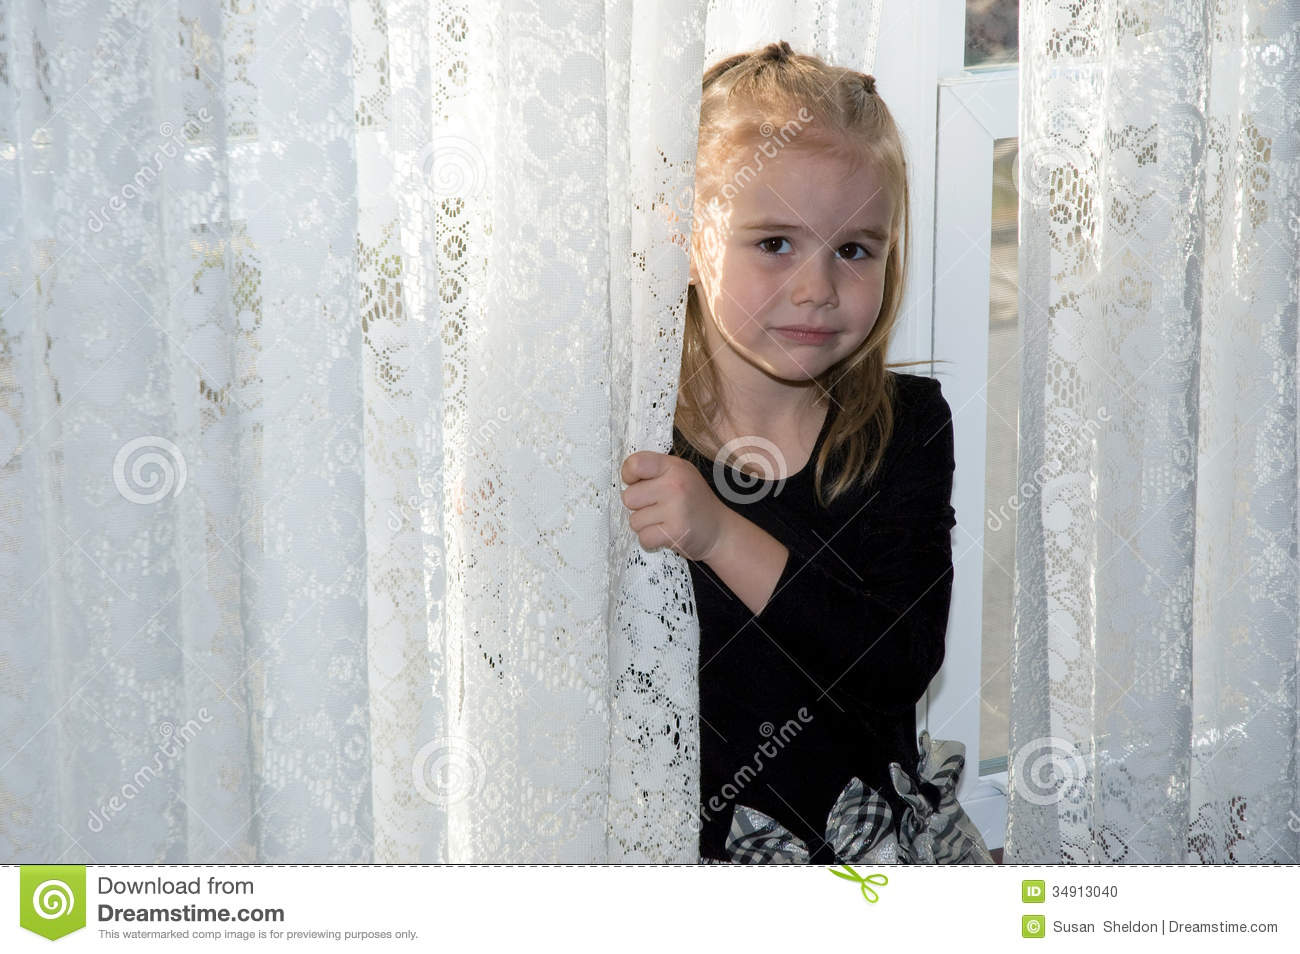 little girl peeks shyly out from behind a white lace curtain.